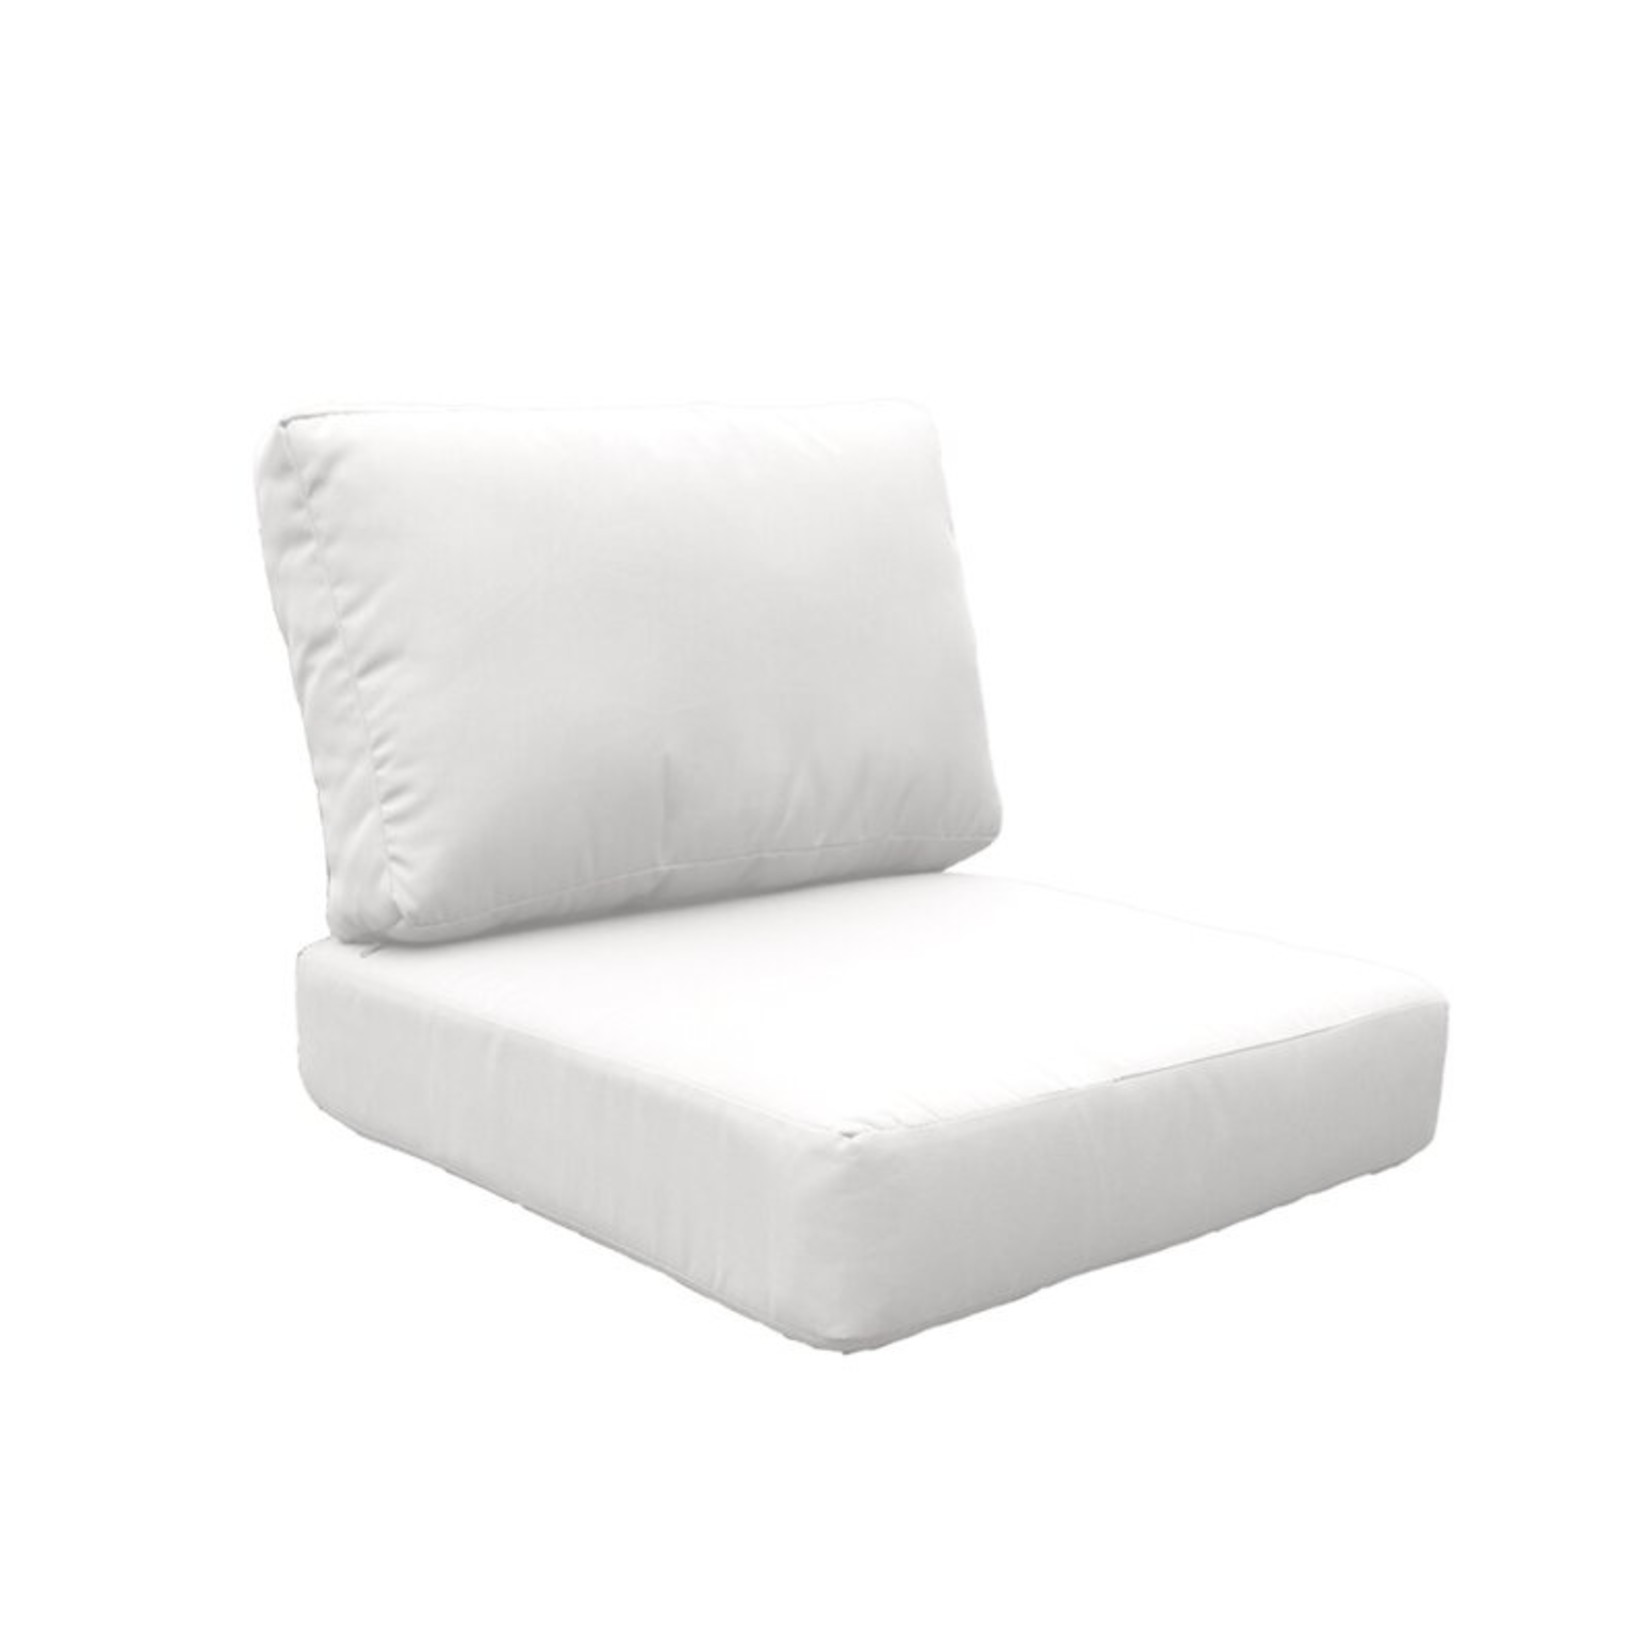 *Damontray Indoor/Outdoor Cushion Cover Set (Covers Only)  - White - Final Sale